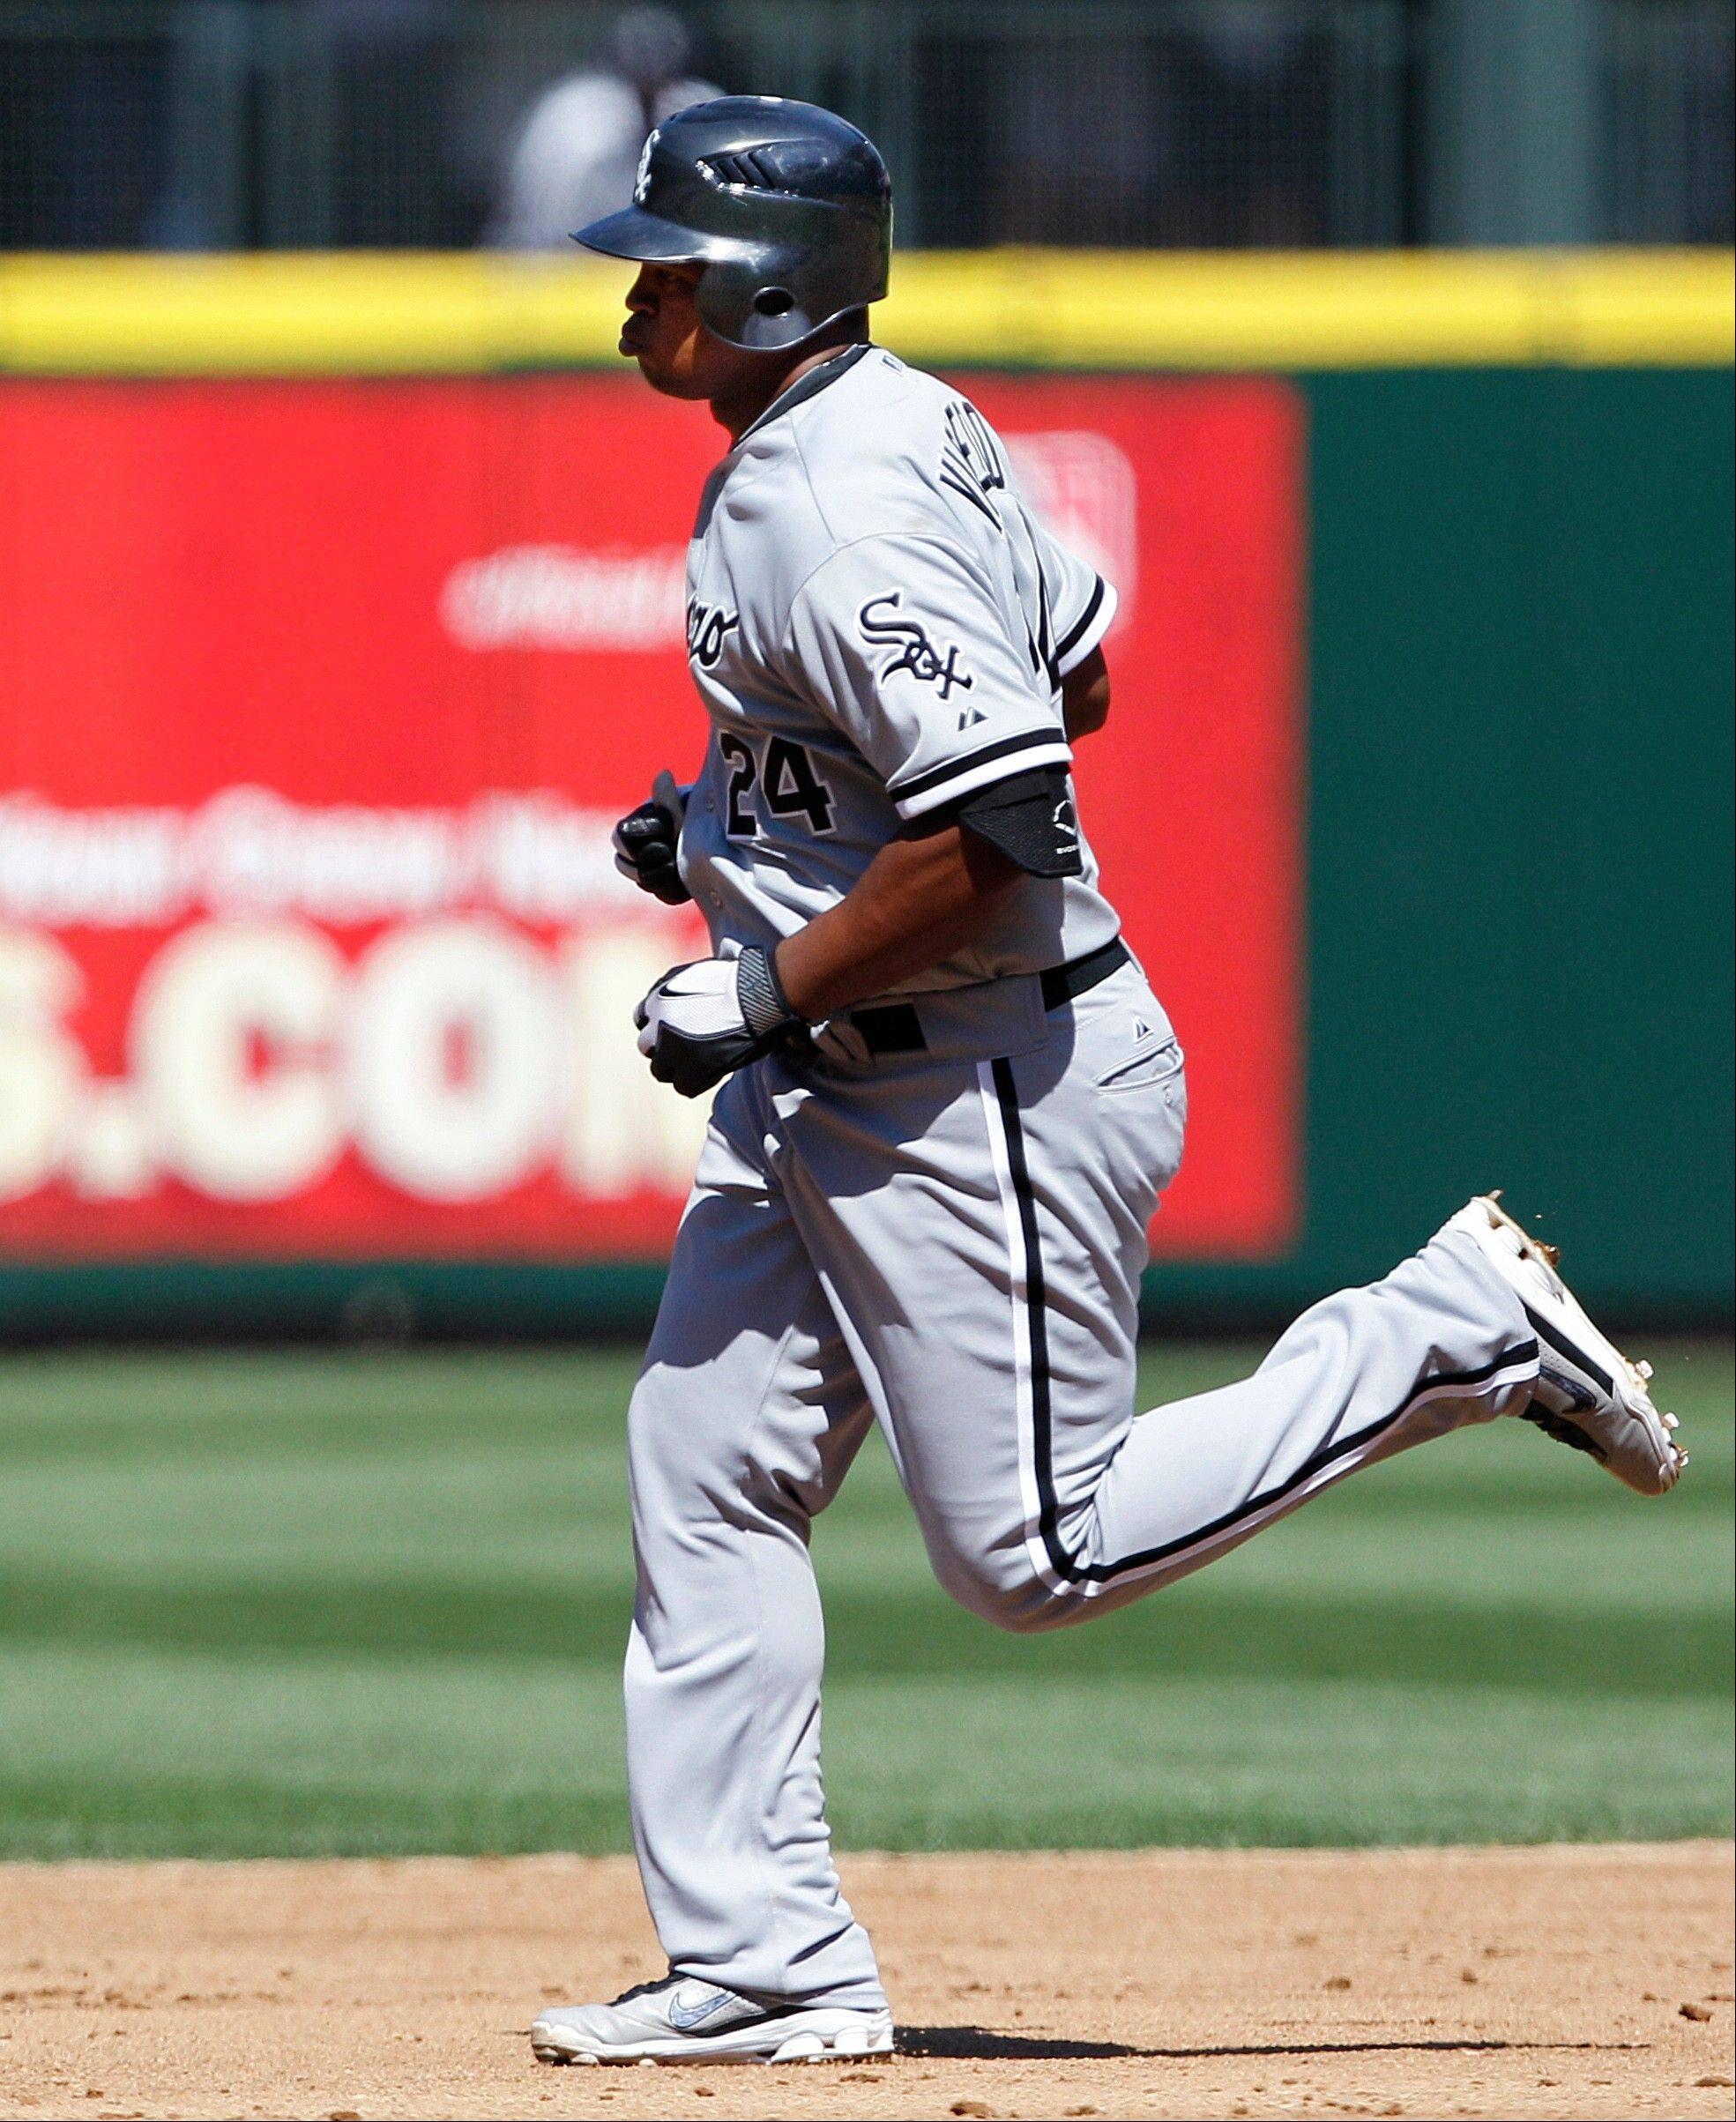 Associated PressChicago White Sox Dayan Viciedo rounds the bases on his three-run home run against Seattle Mariners in the fourth inning Sunday in Seattle.